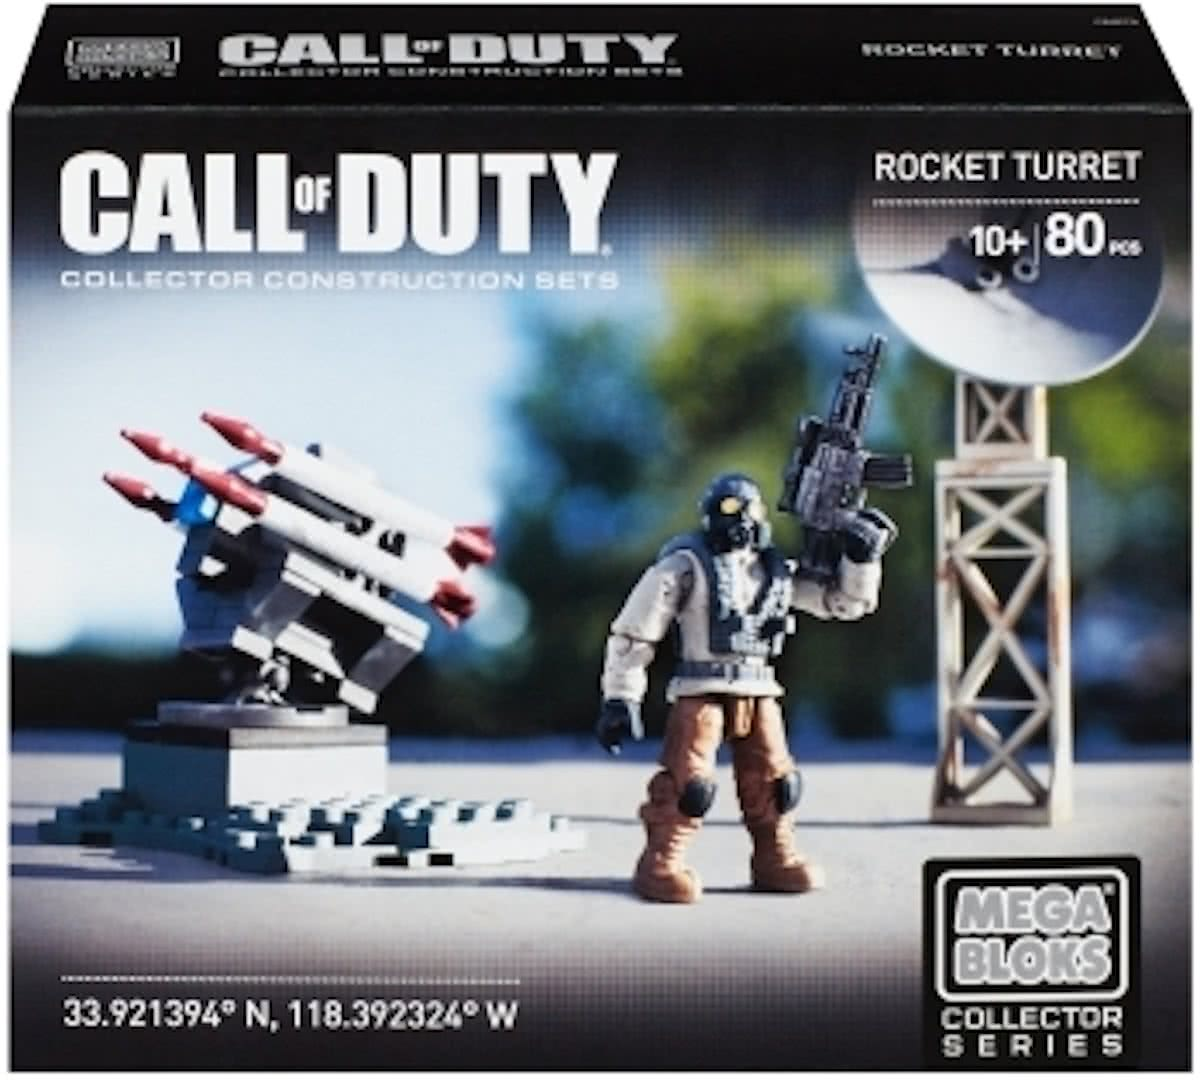 Rocket Turret Mega Bloks Call of Duty